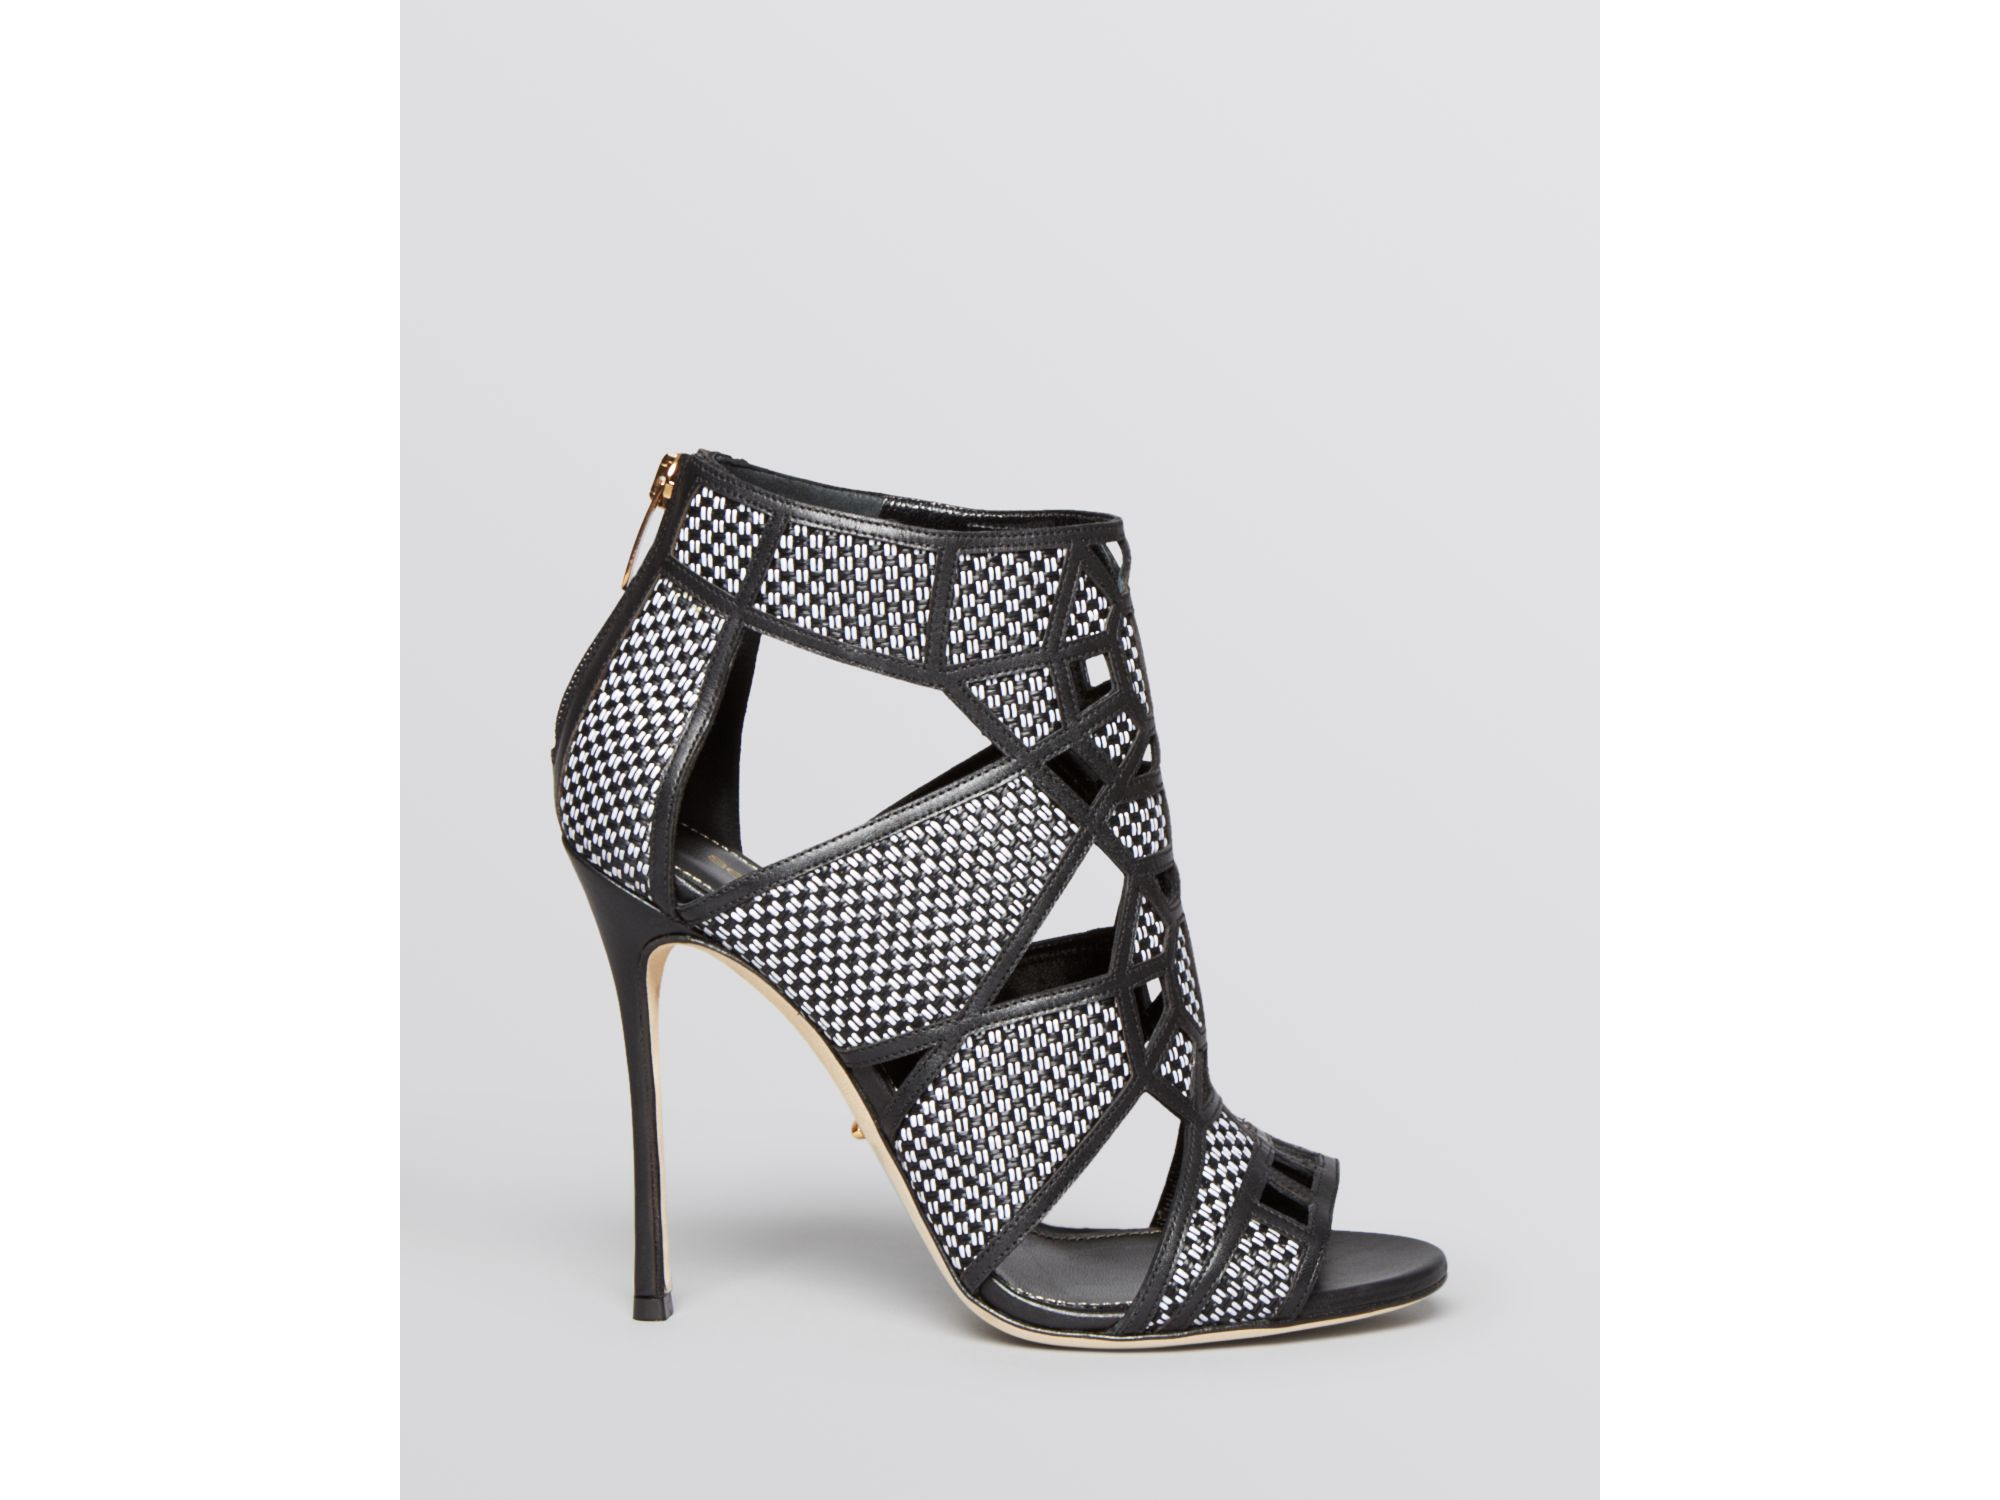 Sergio Rossi heeled open-toe sandals outlet visit new 3mtfHMkP